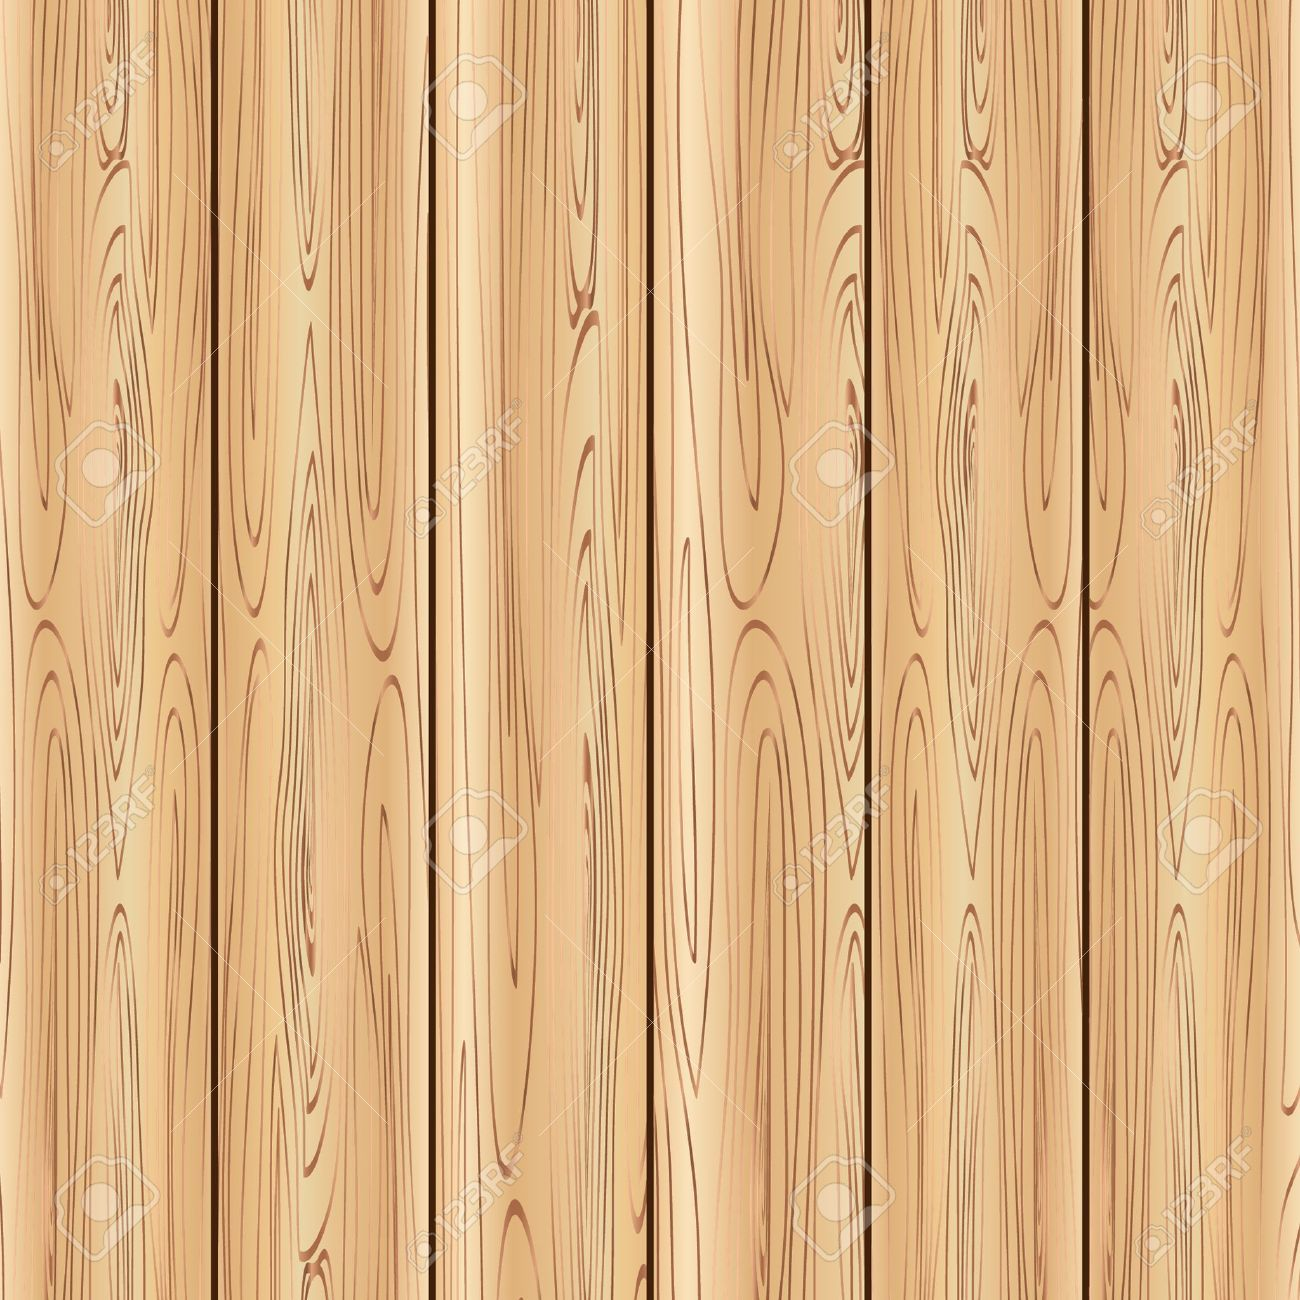 Brown wood panel background. Stock Vector - 18139829 - Brown Wood Panel Background. Royalty Free Cliparts, Vectors, And